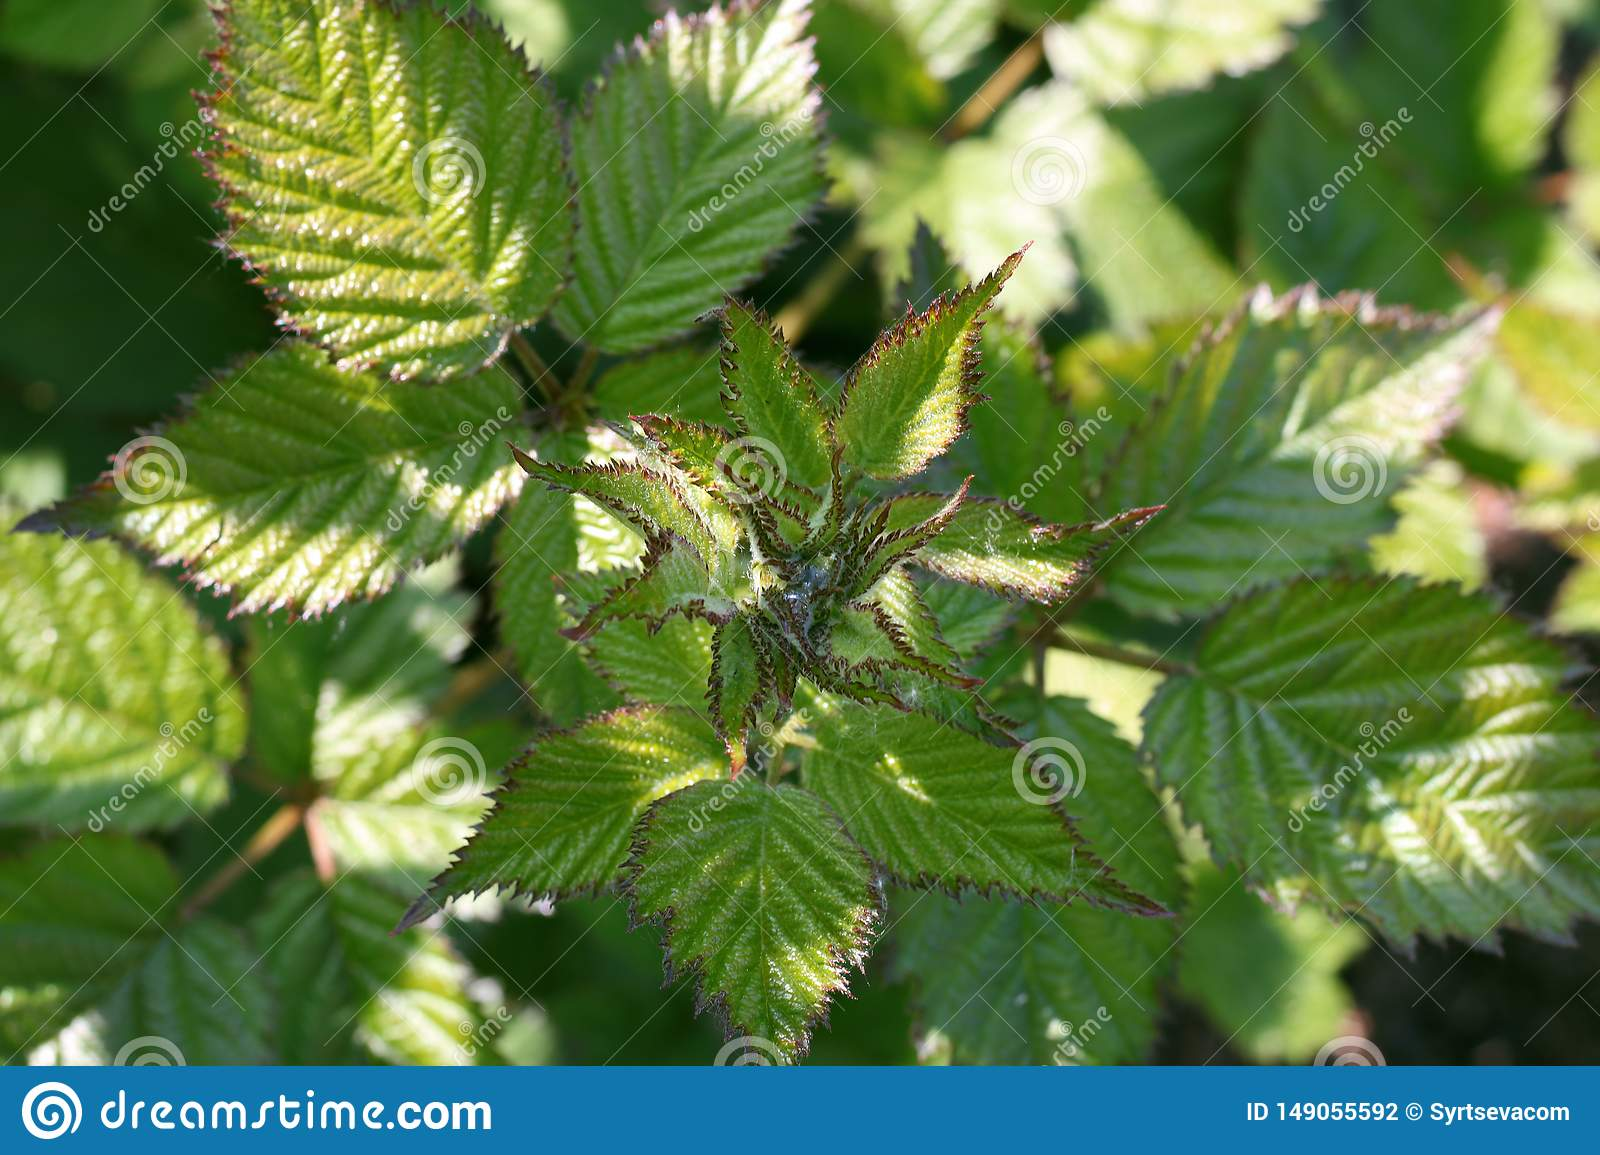 Young BlackBerry leaves close-up in the garden